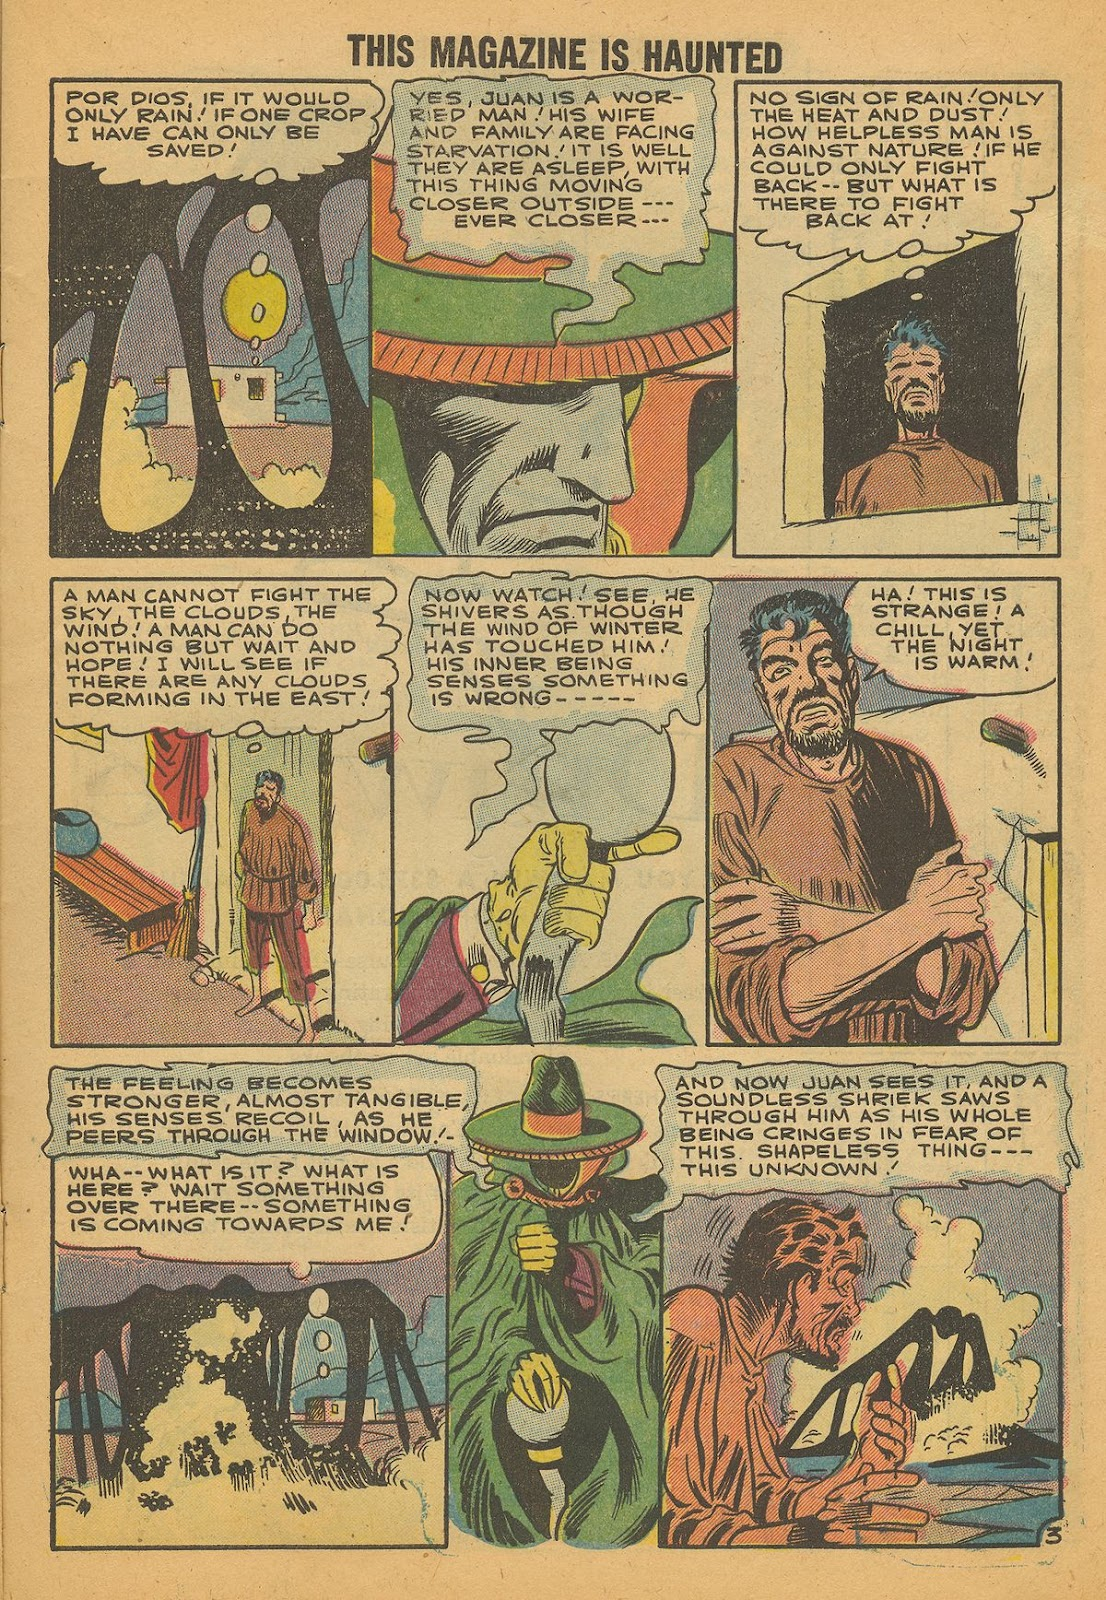 Read online This Magazine Is Haunted comic -  Issue #14 - 5